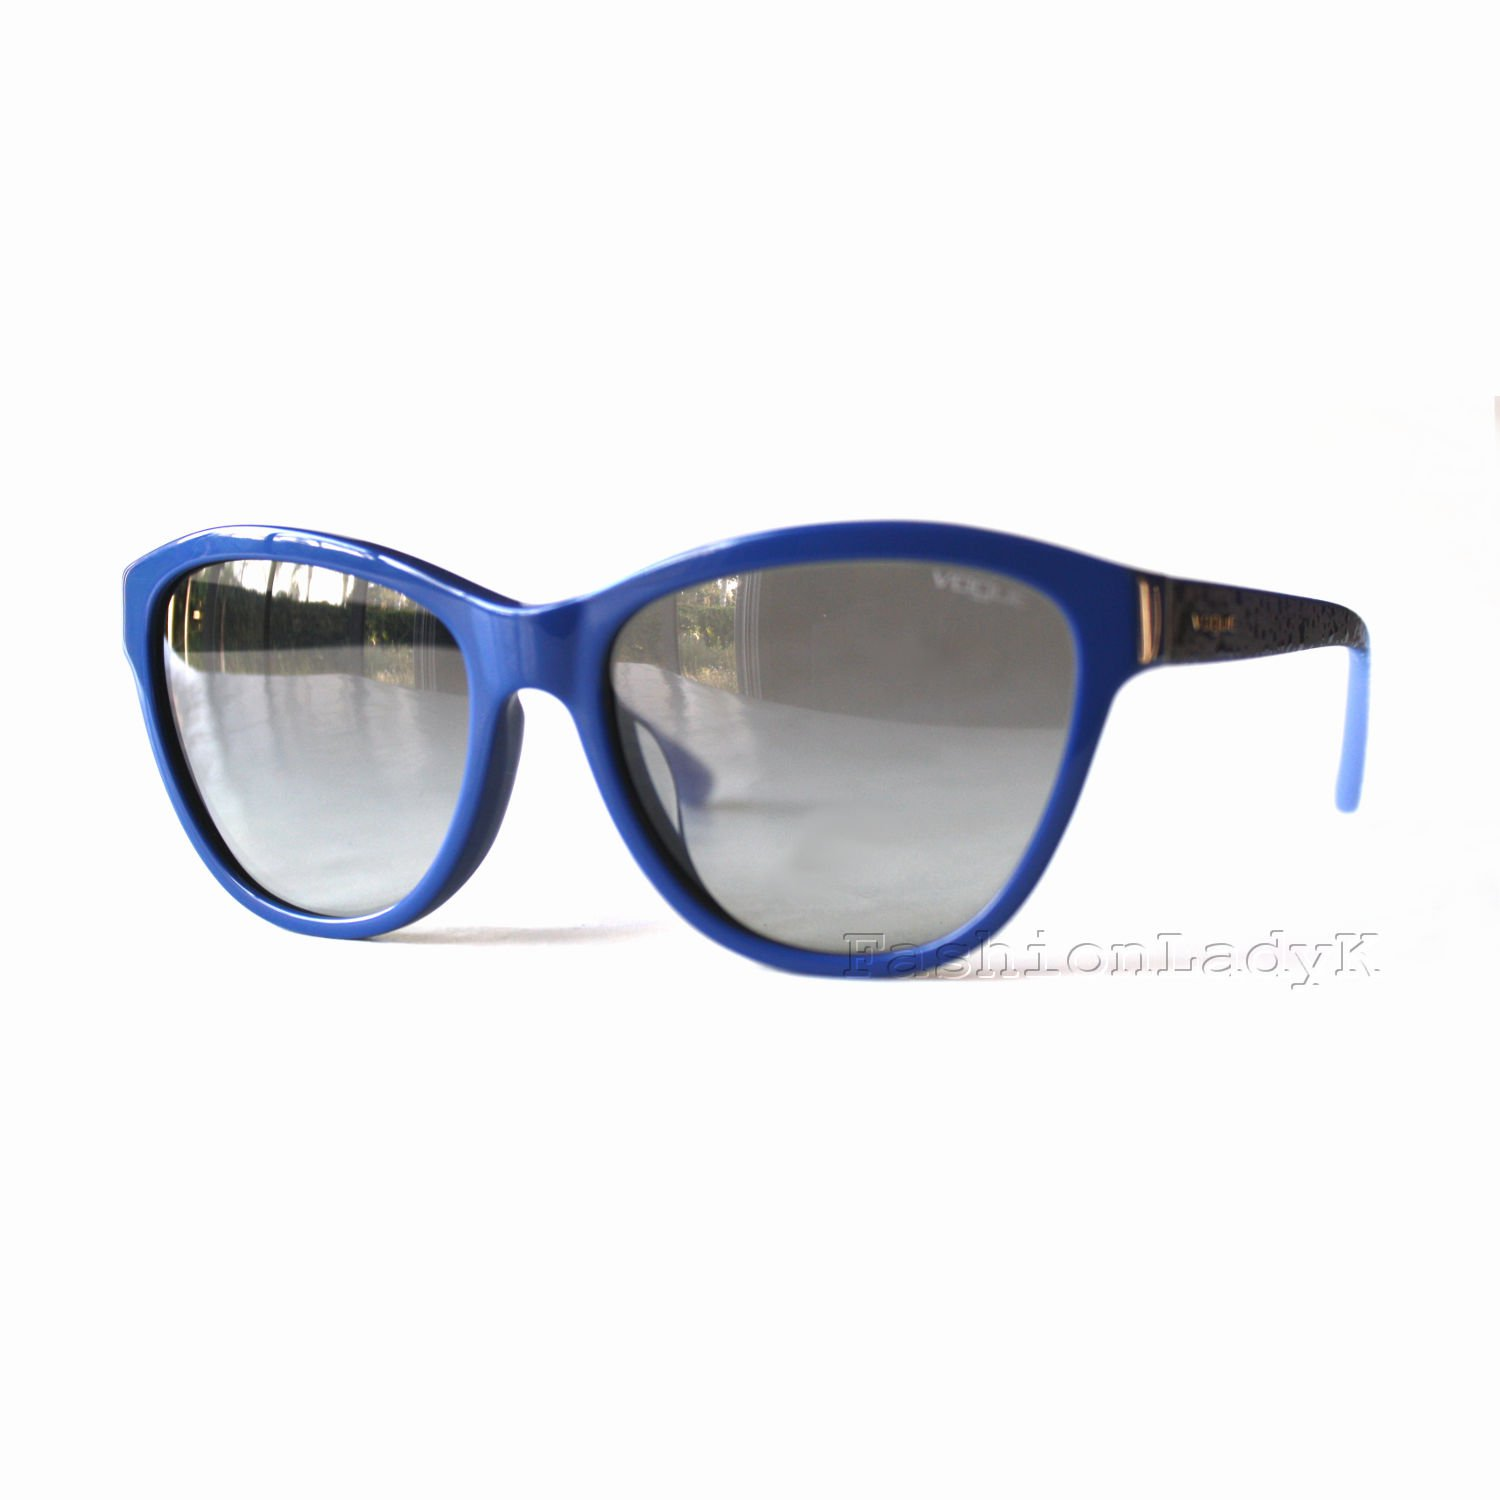 VOGUE Women Blue Frame Gray Lens Sunglasses VO2993-SF 2356-11 New w/ Case